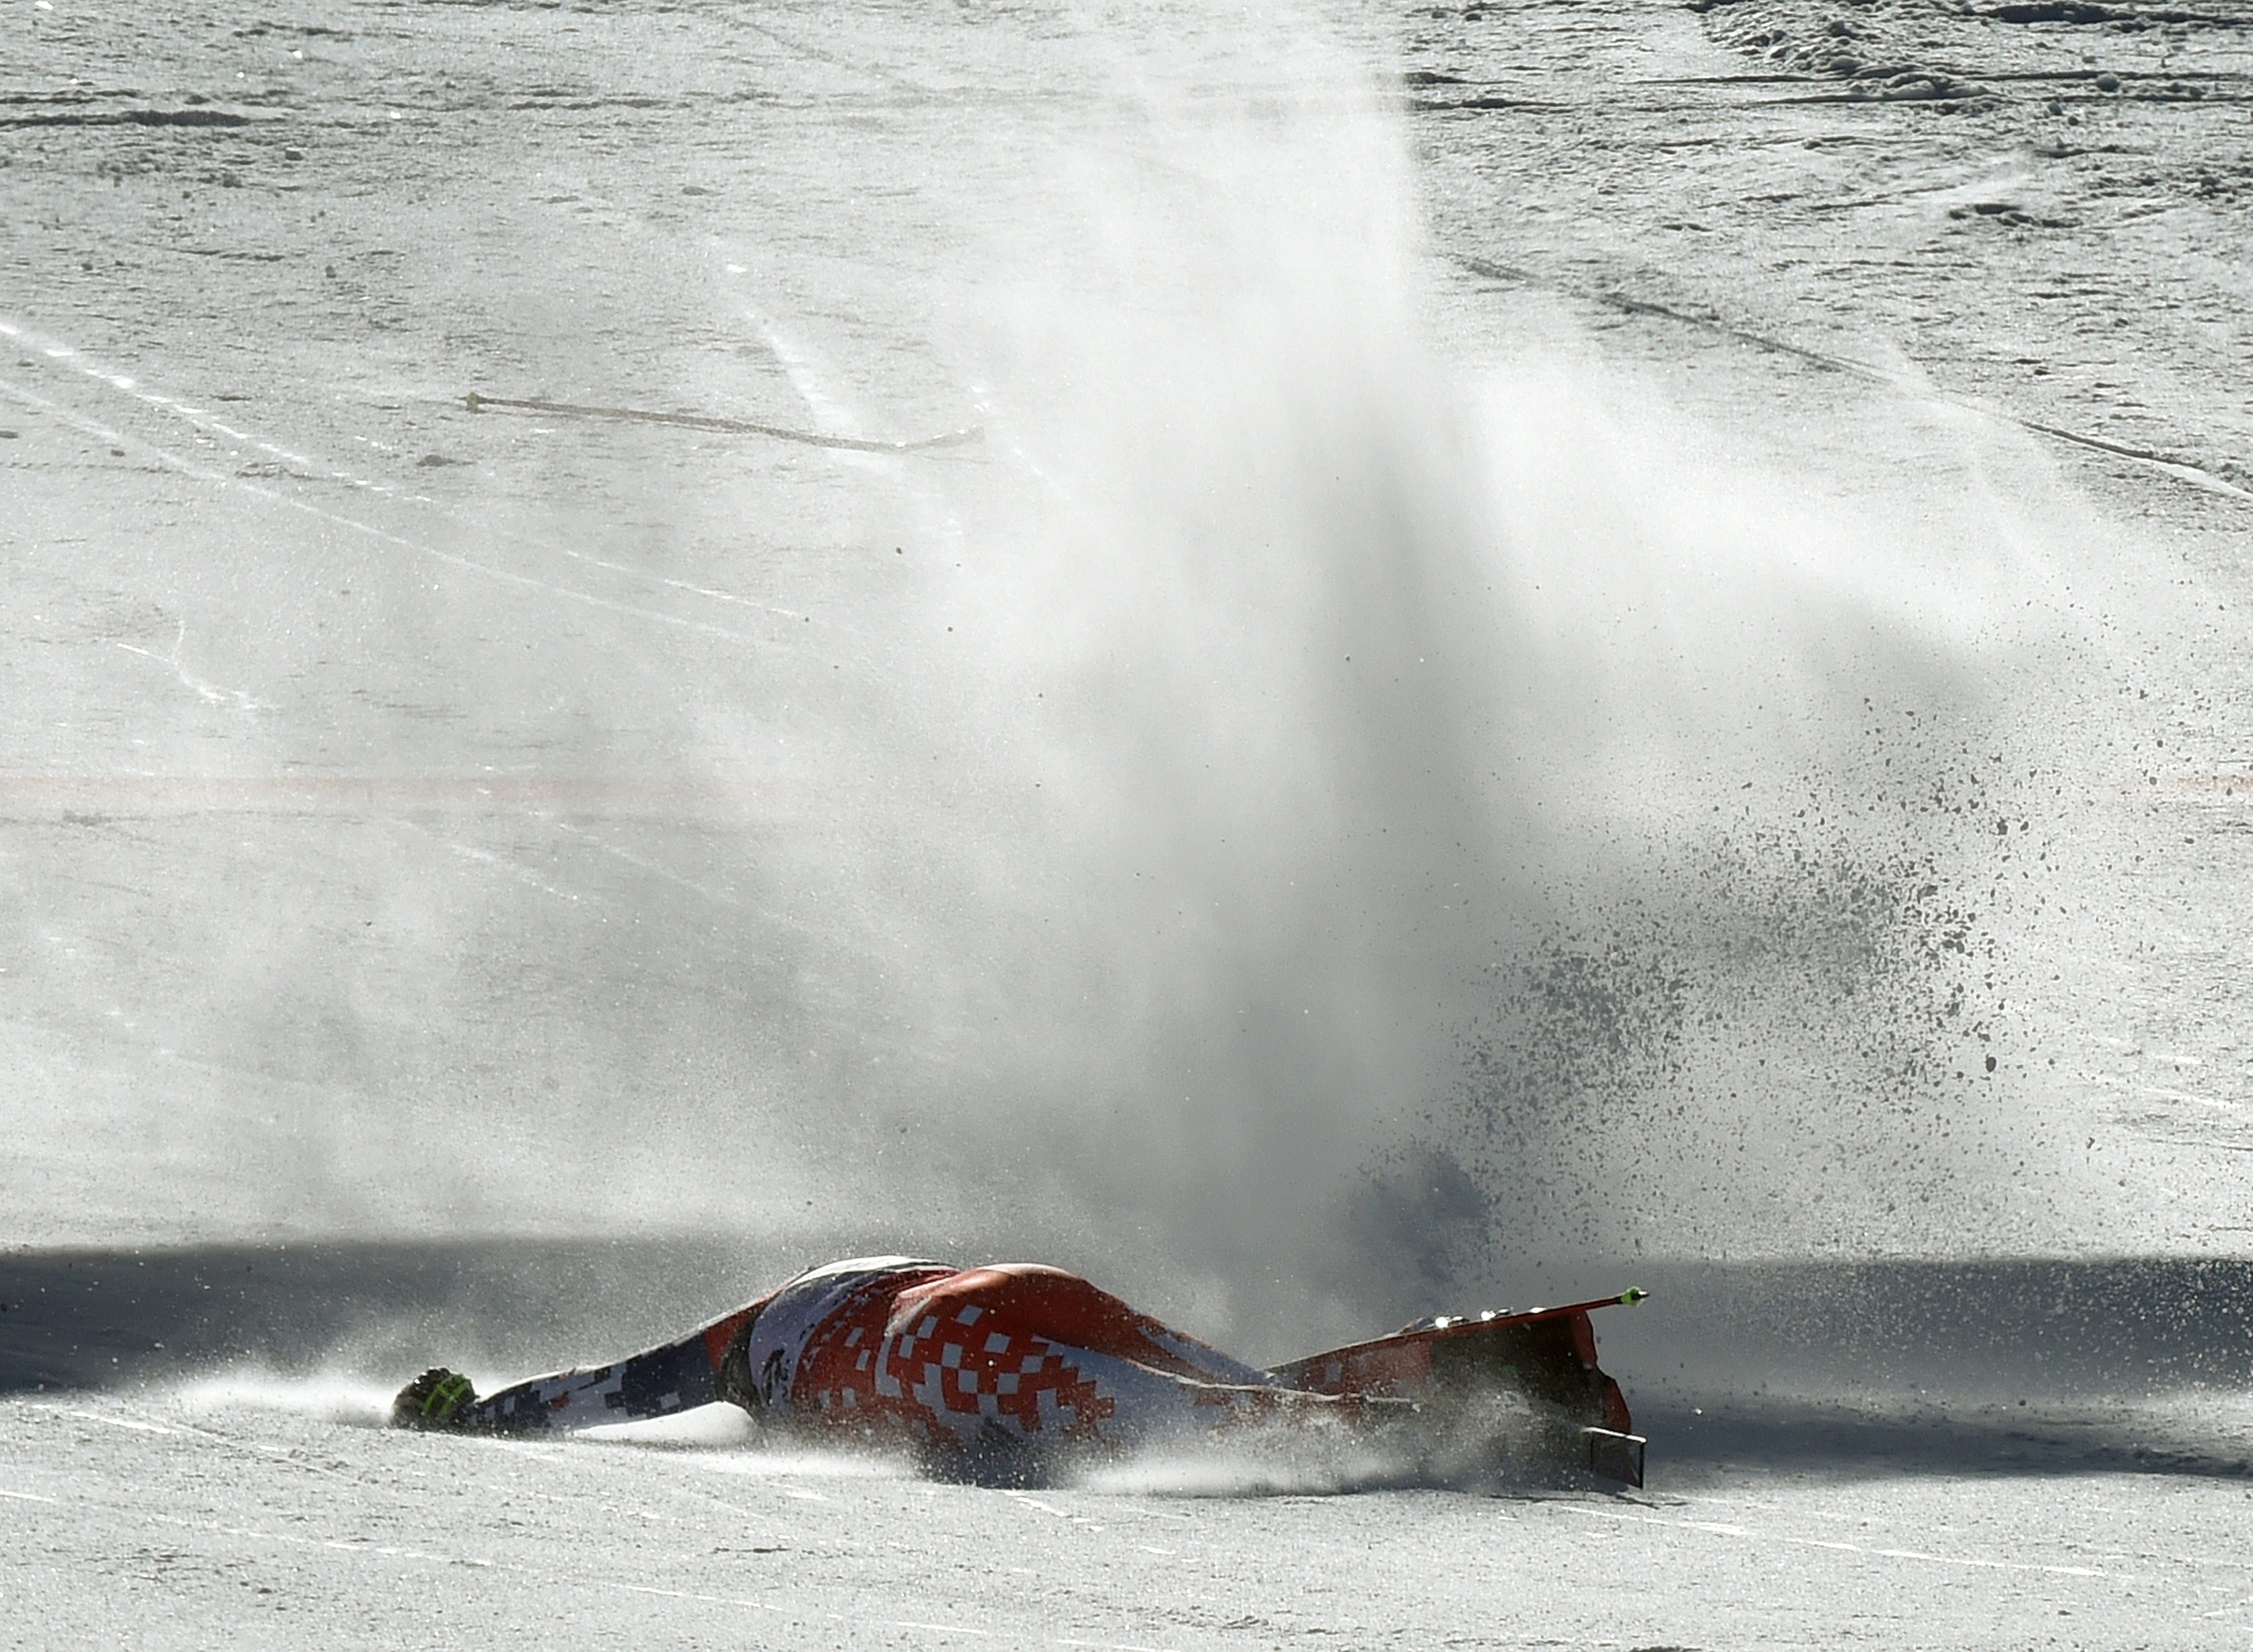 Ondrej Bank of the Czech Republic slides near the finish line after crashing during the 2015 World Alpine Ski Championships men's combined-downhill February 8, 2015 in Beaver Creek, Colorado.    (credit: MARK RALSTON/AFP/Getty Images)